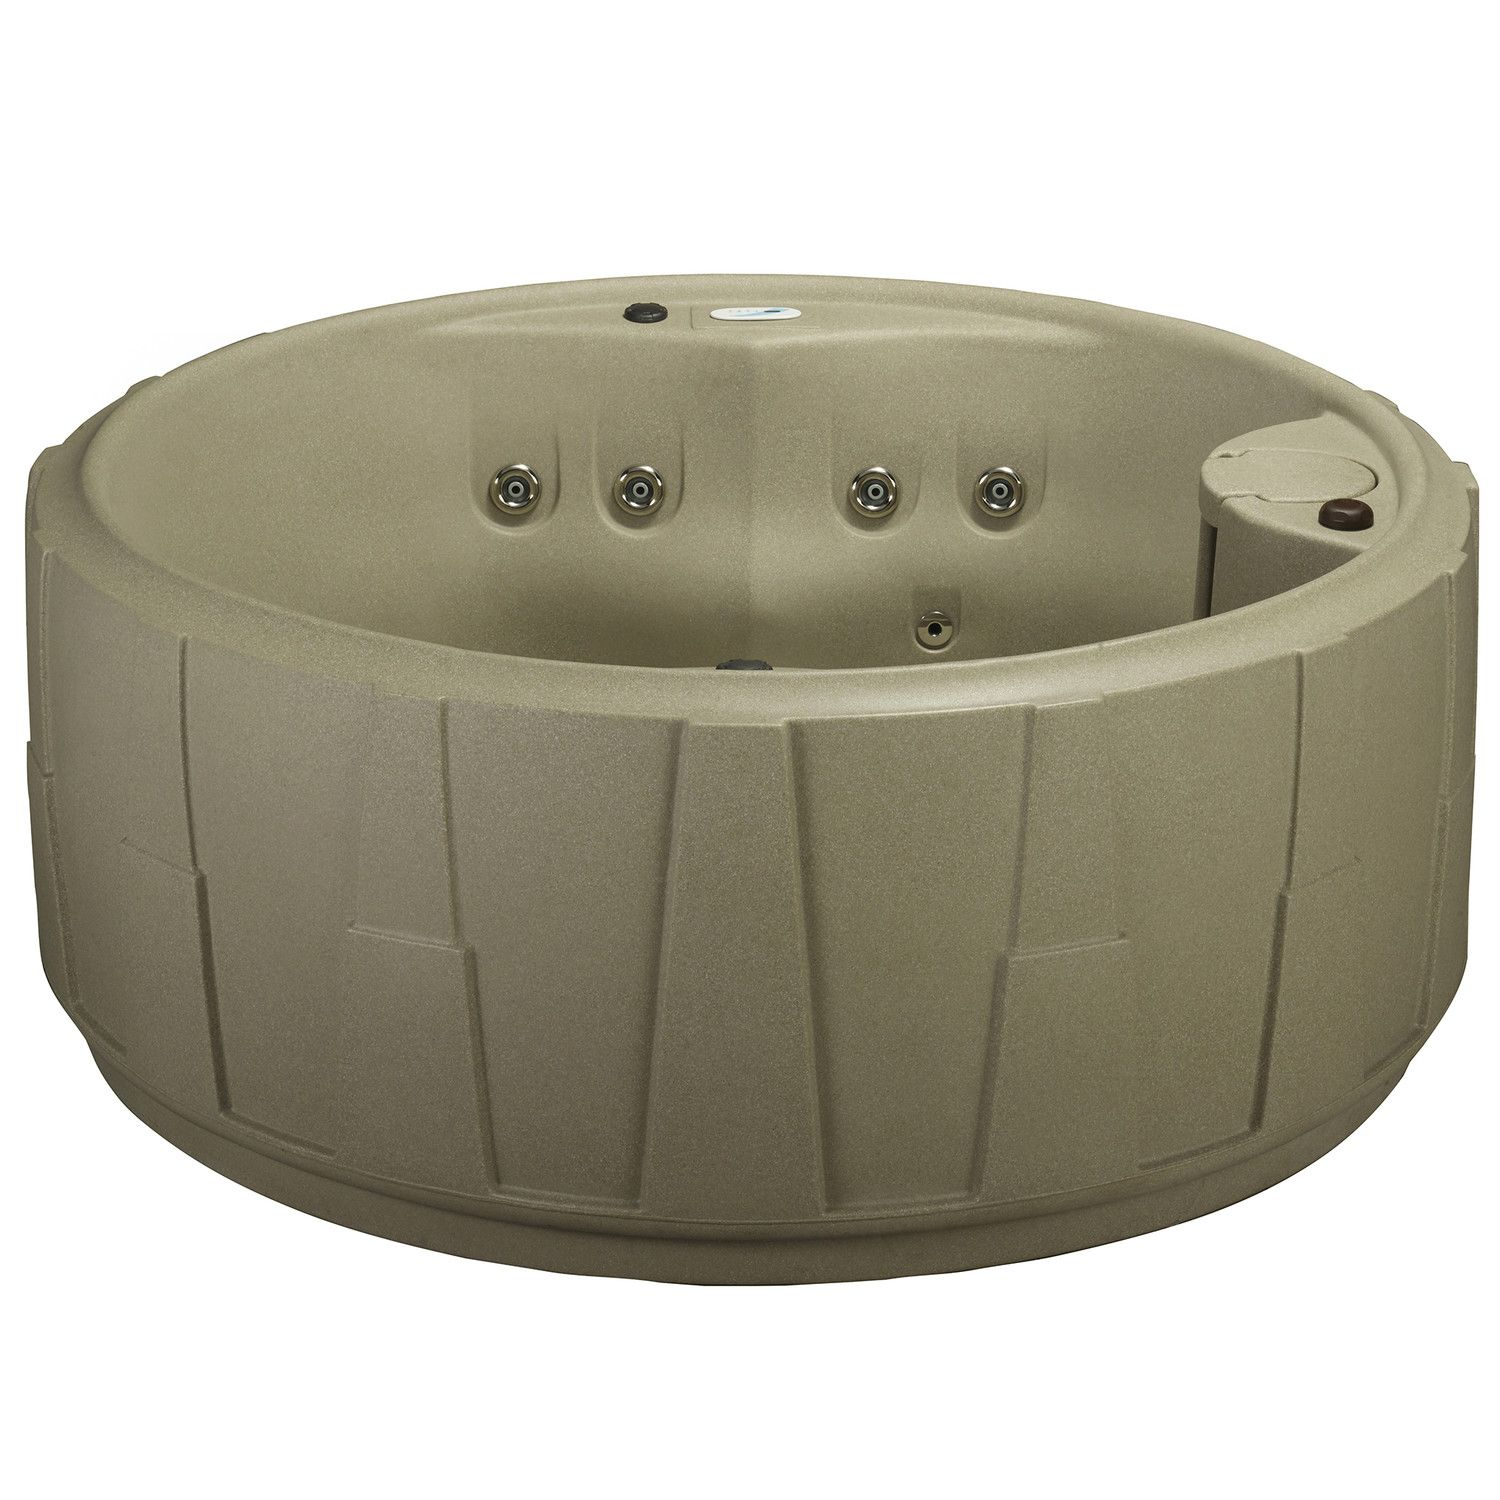 vancouver whirlpool special portfolio island west direct american hot tub tubs coast ozone factory specials